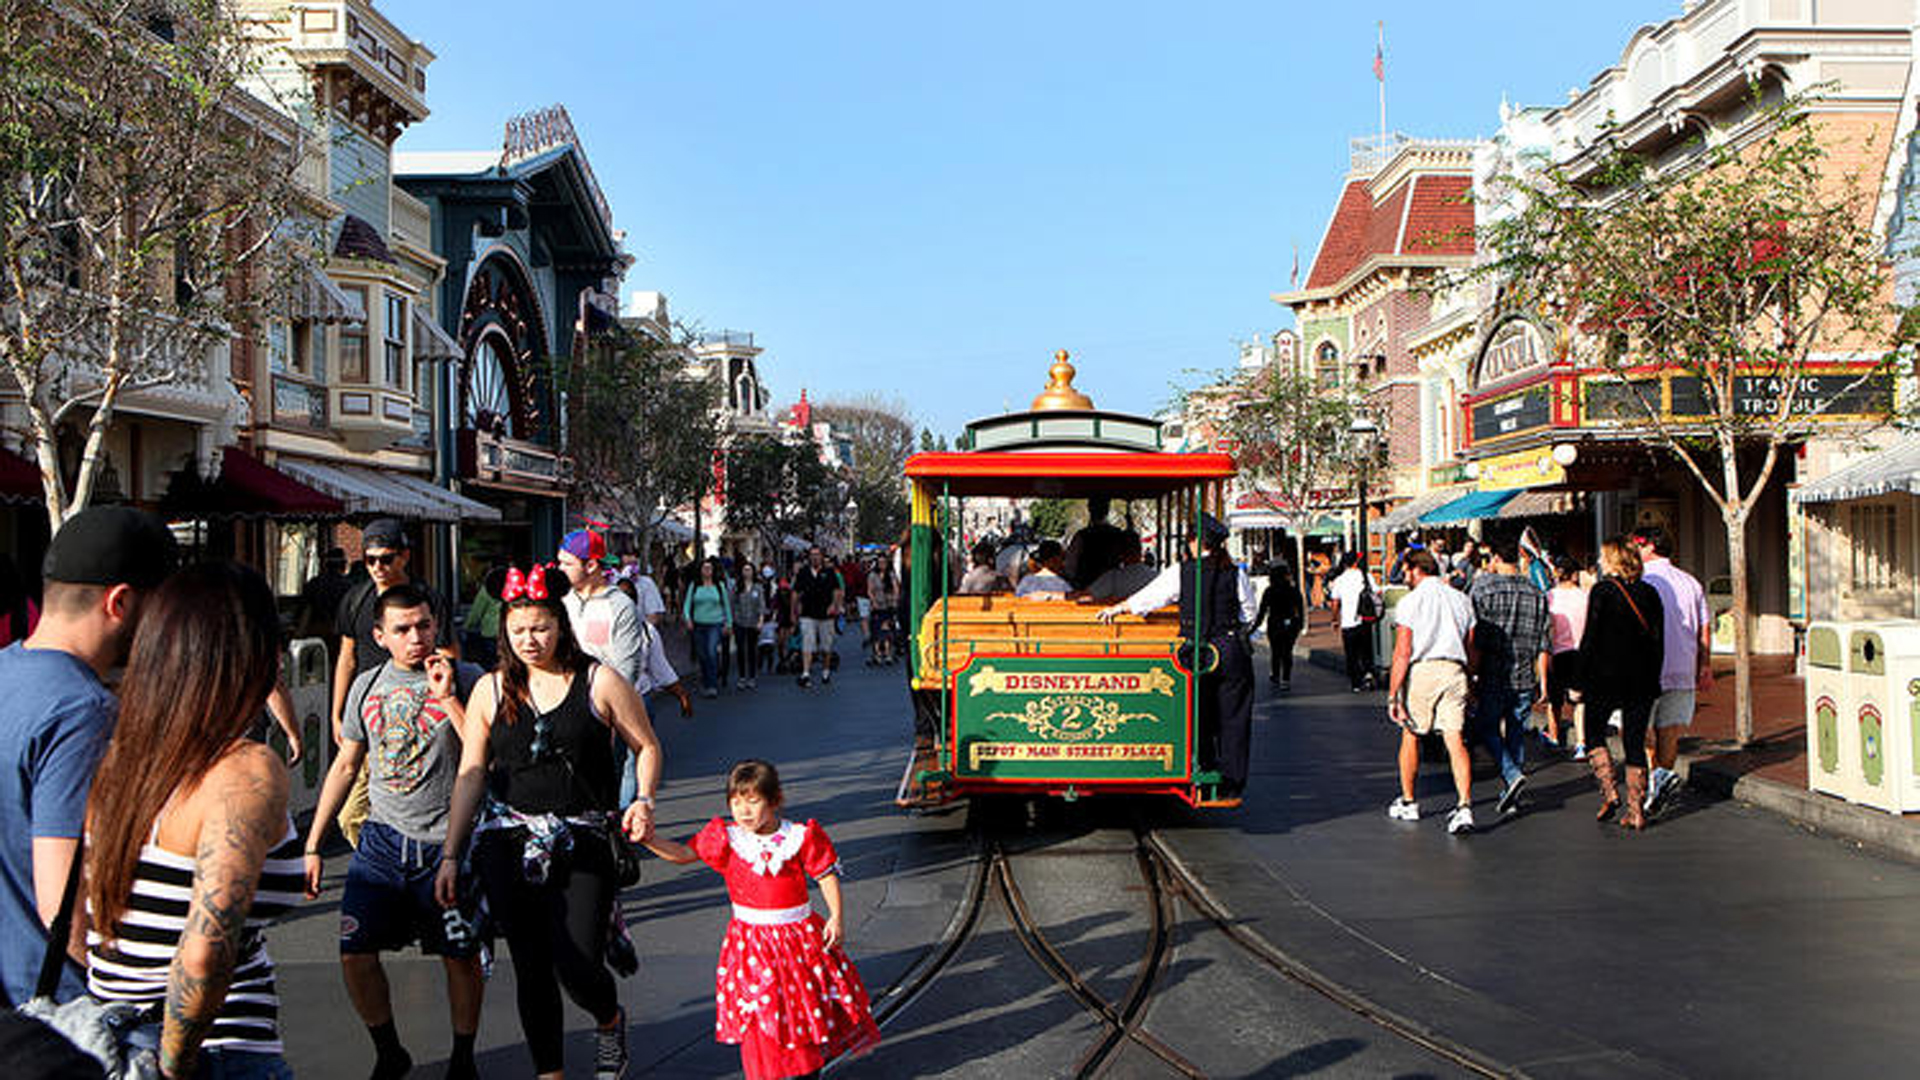 Evidence suggests that the latest measles outbreak has spread beyond people who visited Disneyland between Dec